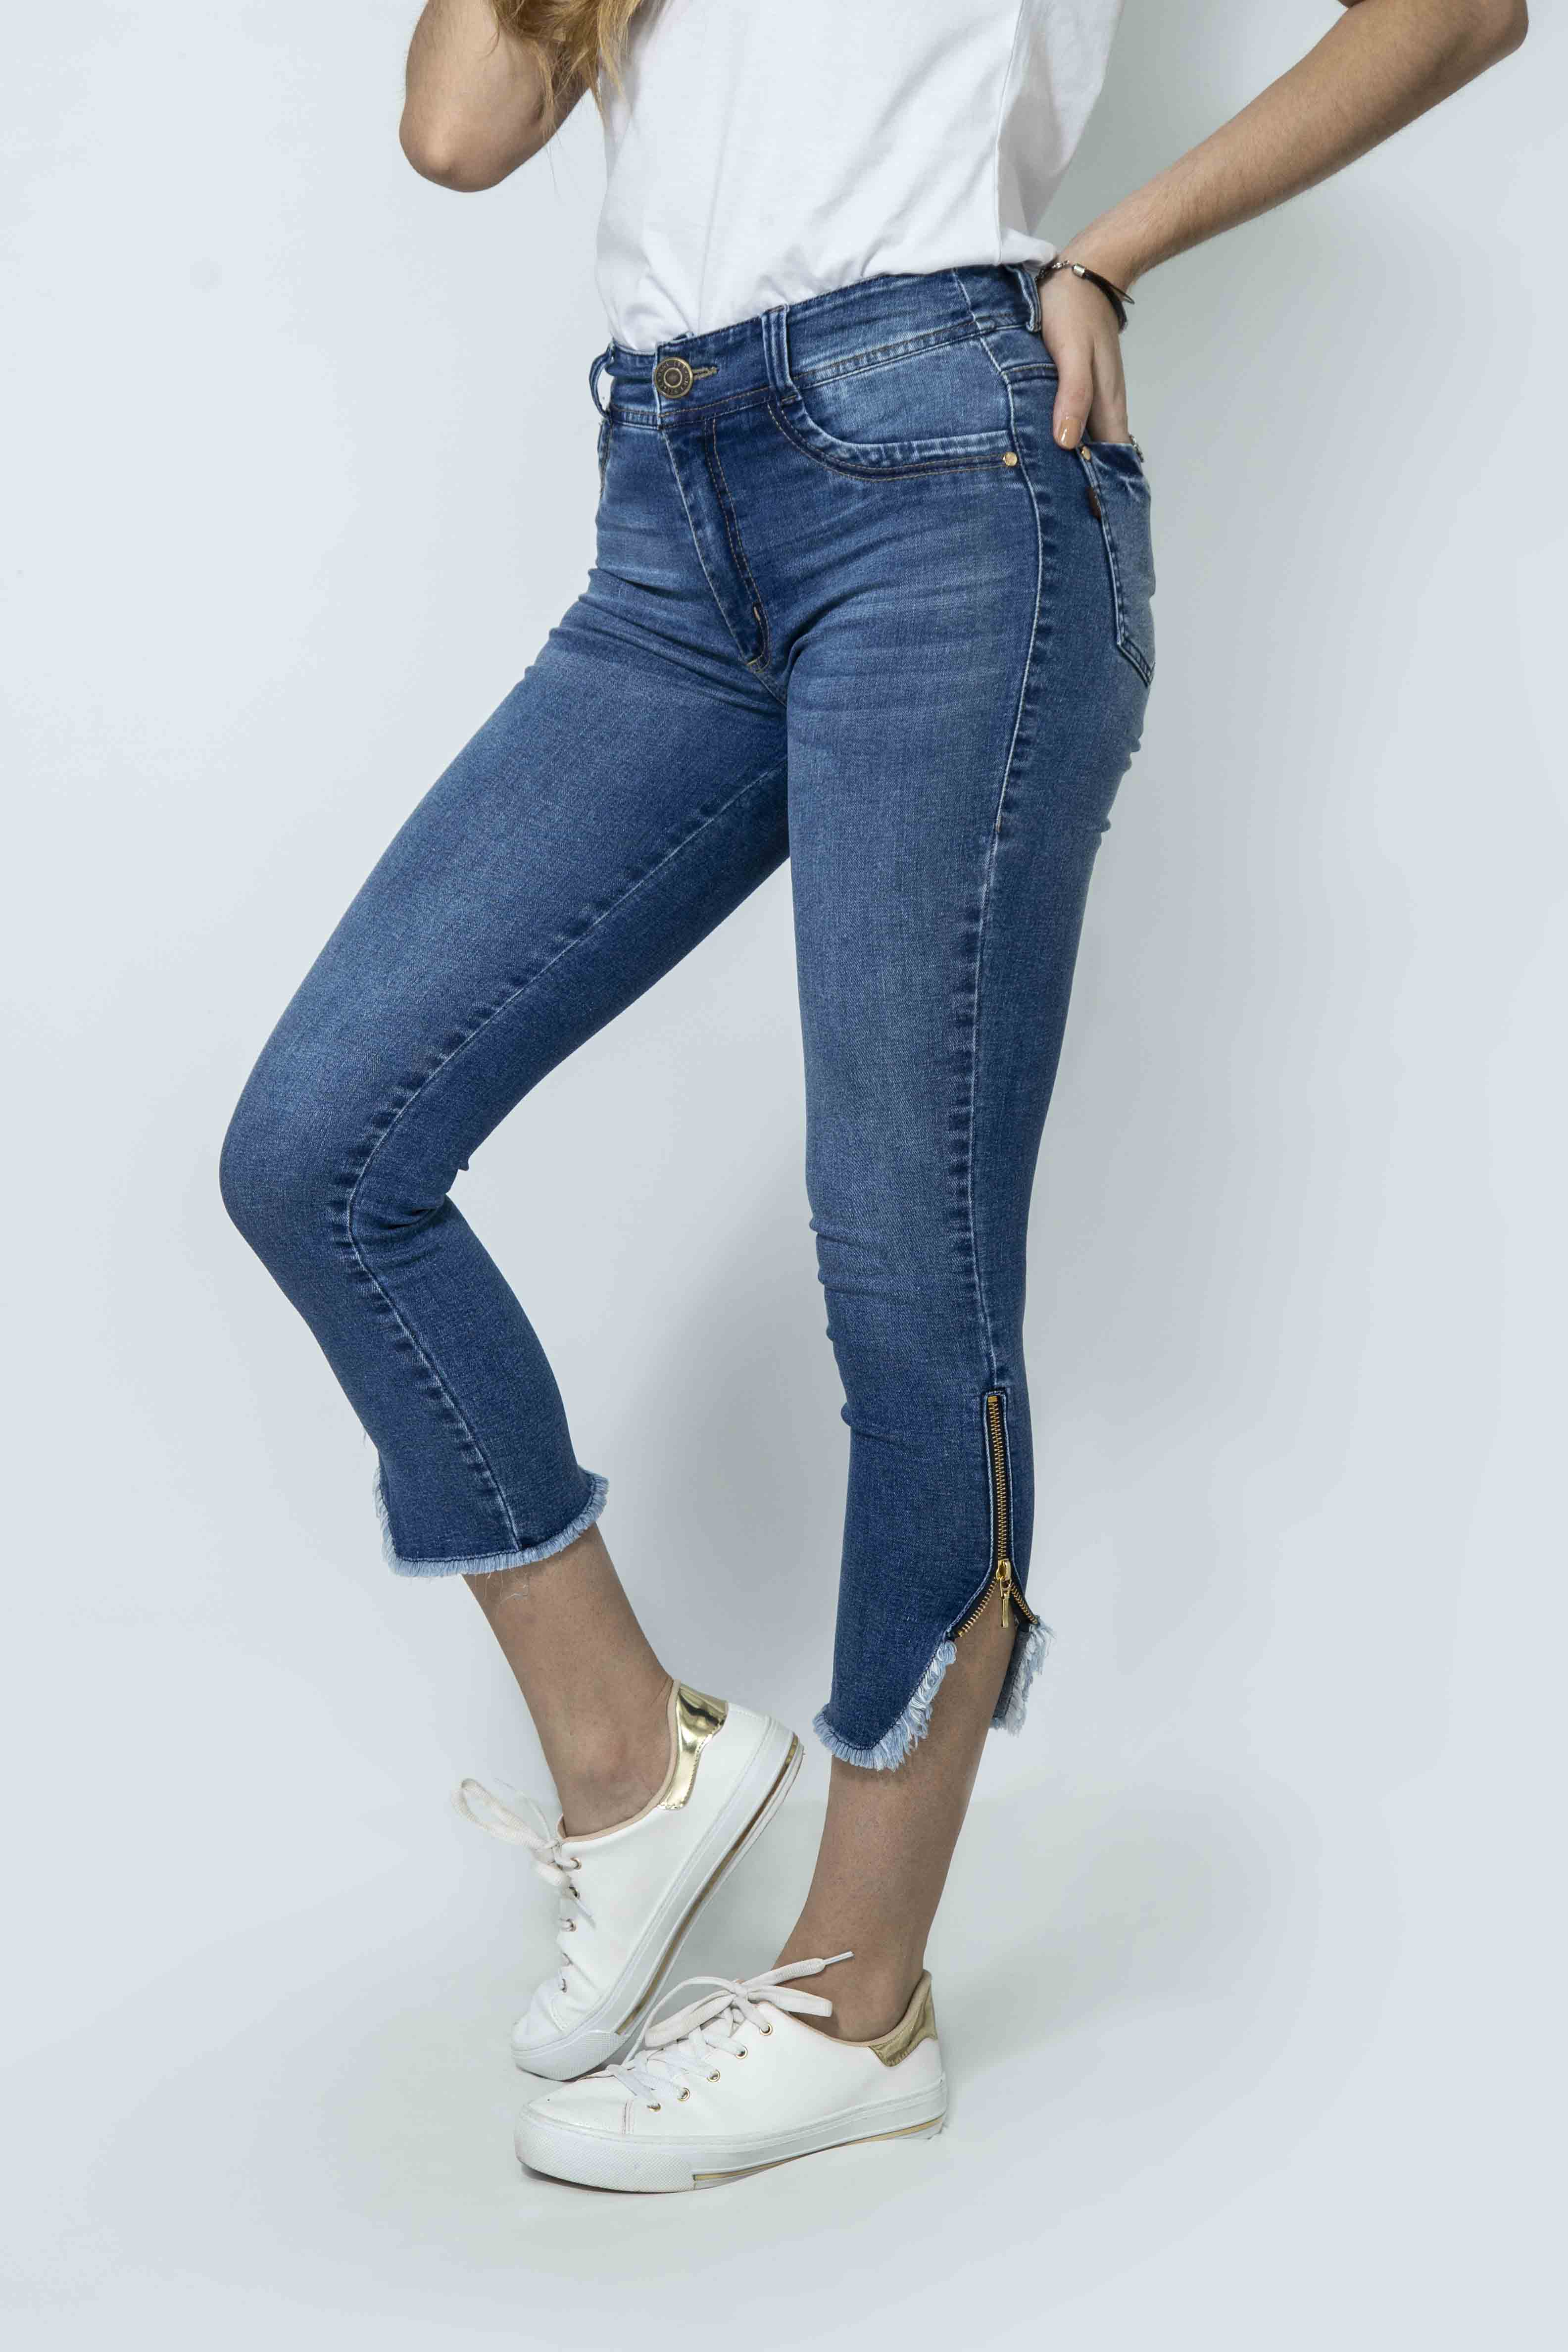 Jeans Cod. 1190460